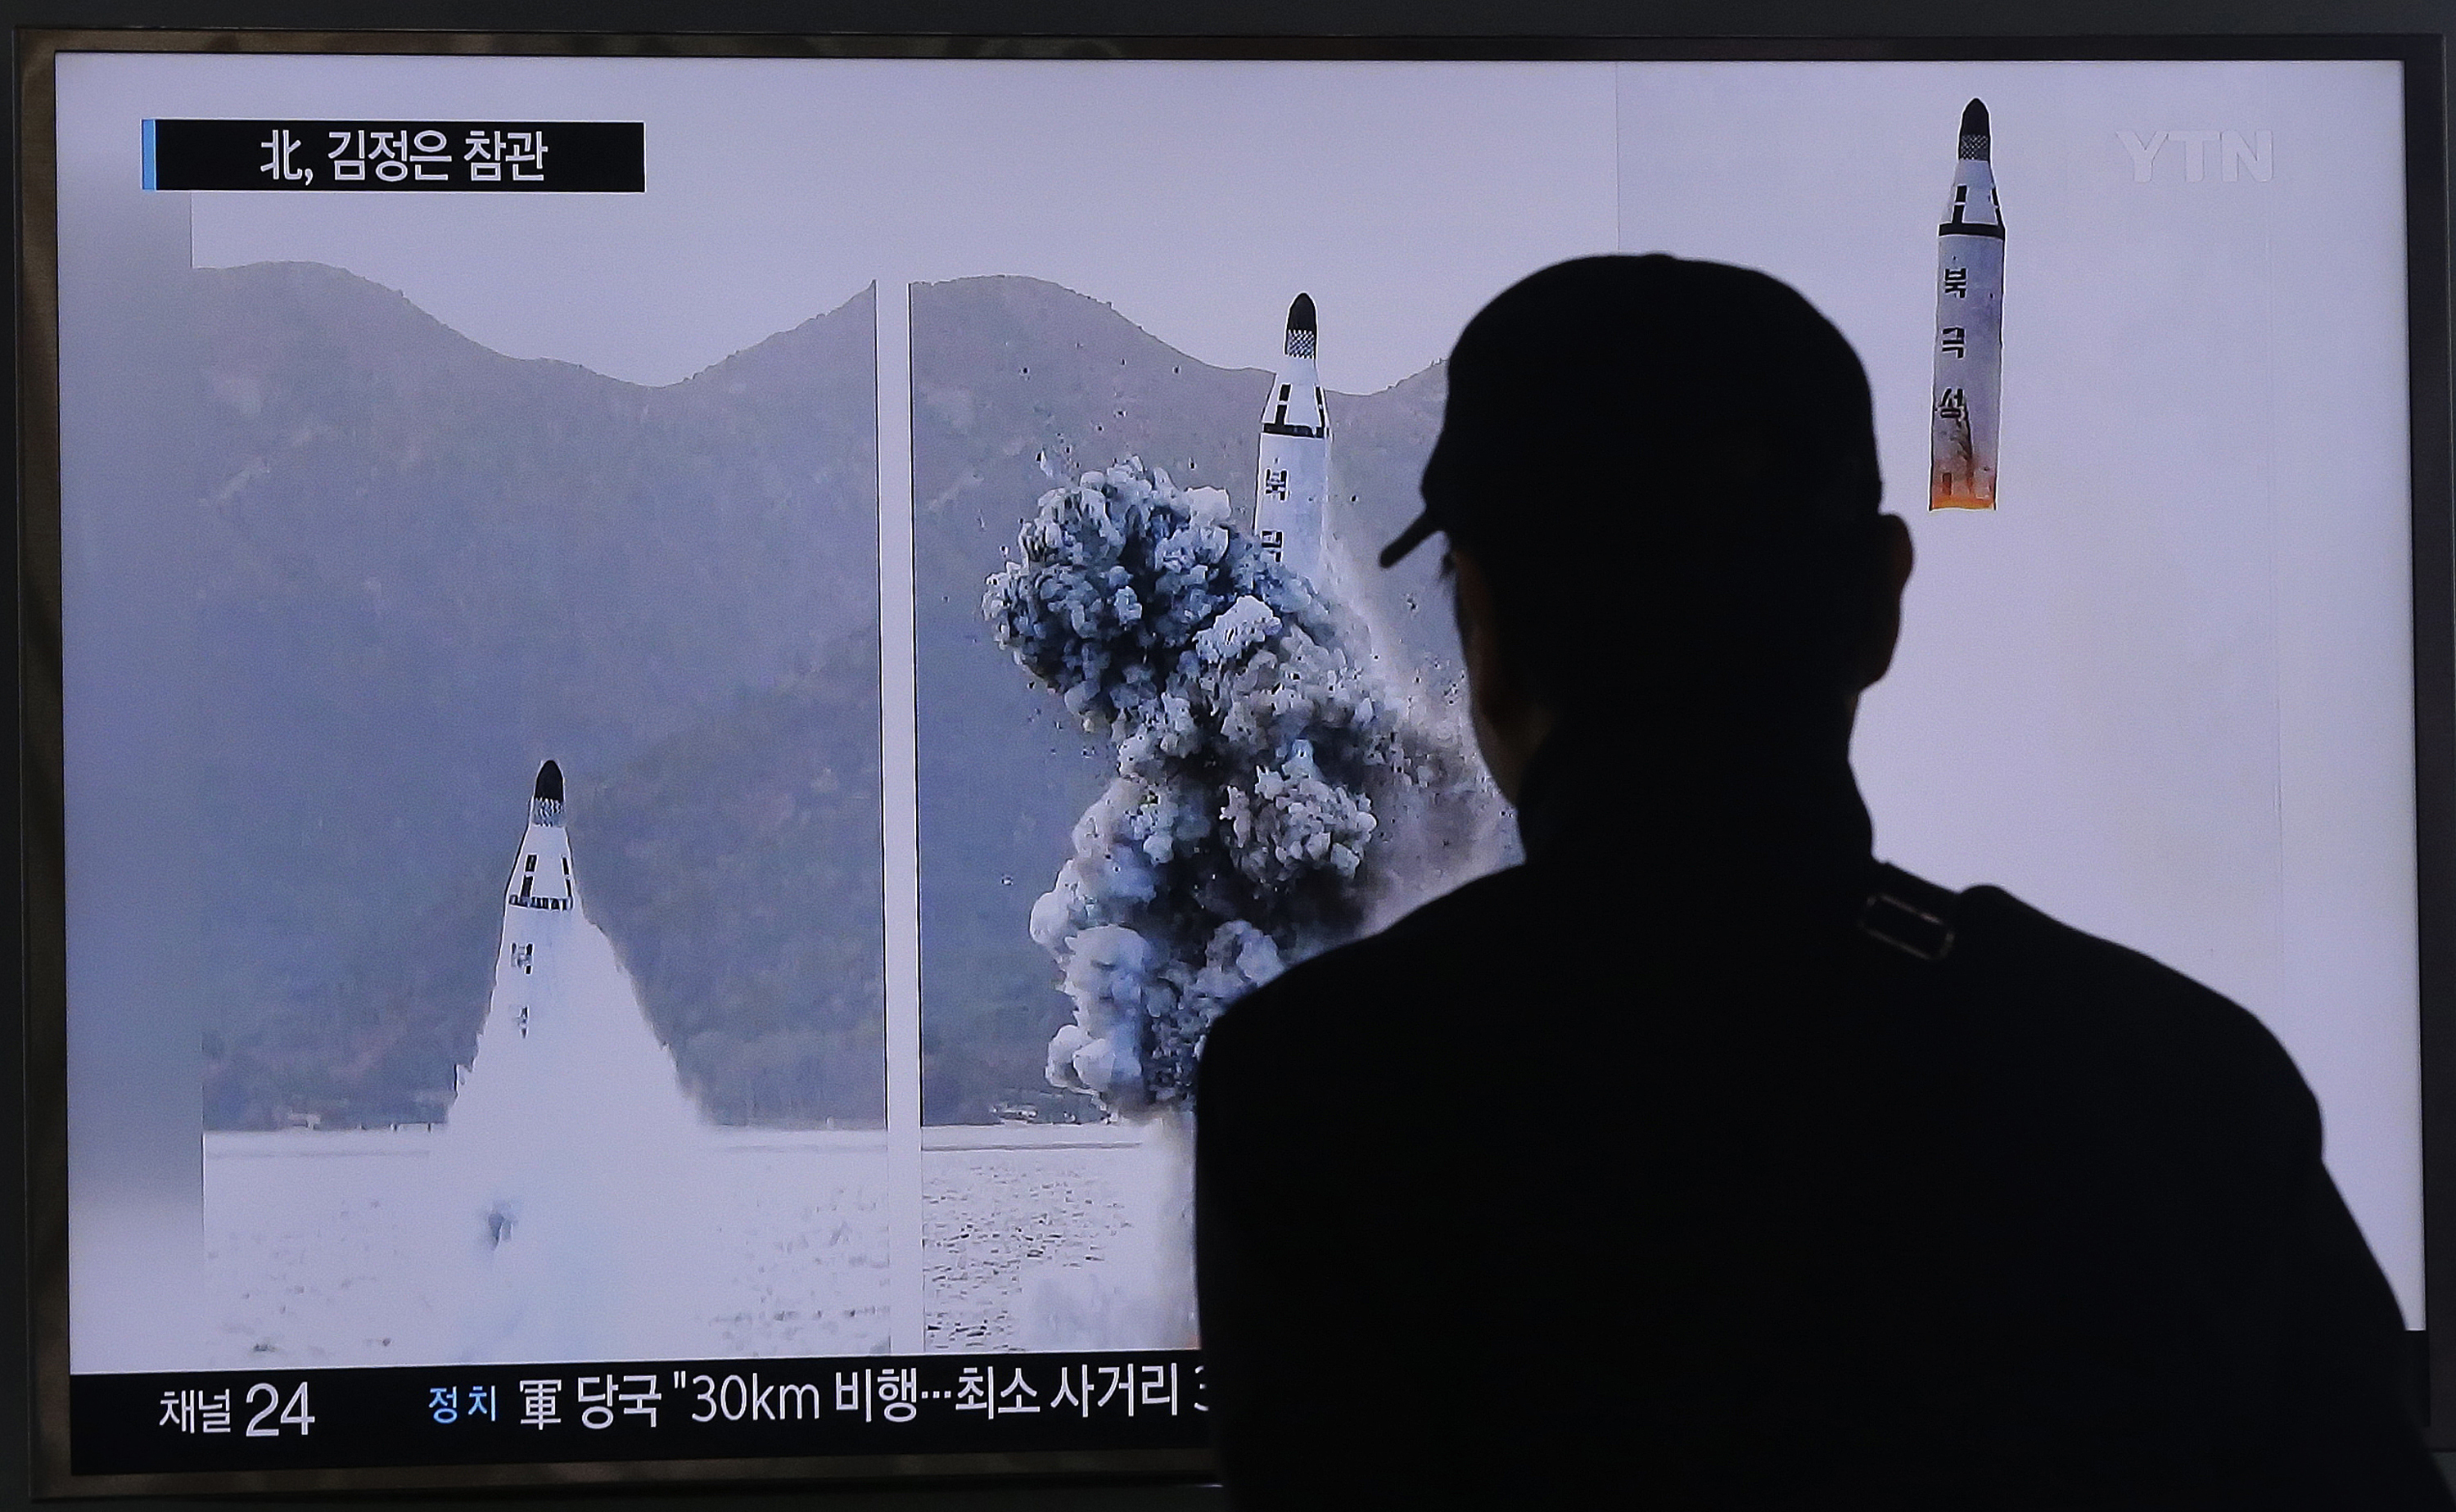 Americans Have 'Serious Risk of Arrest' in North Korea, Says State Department